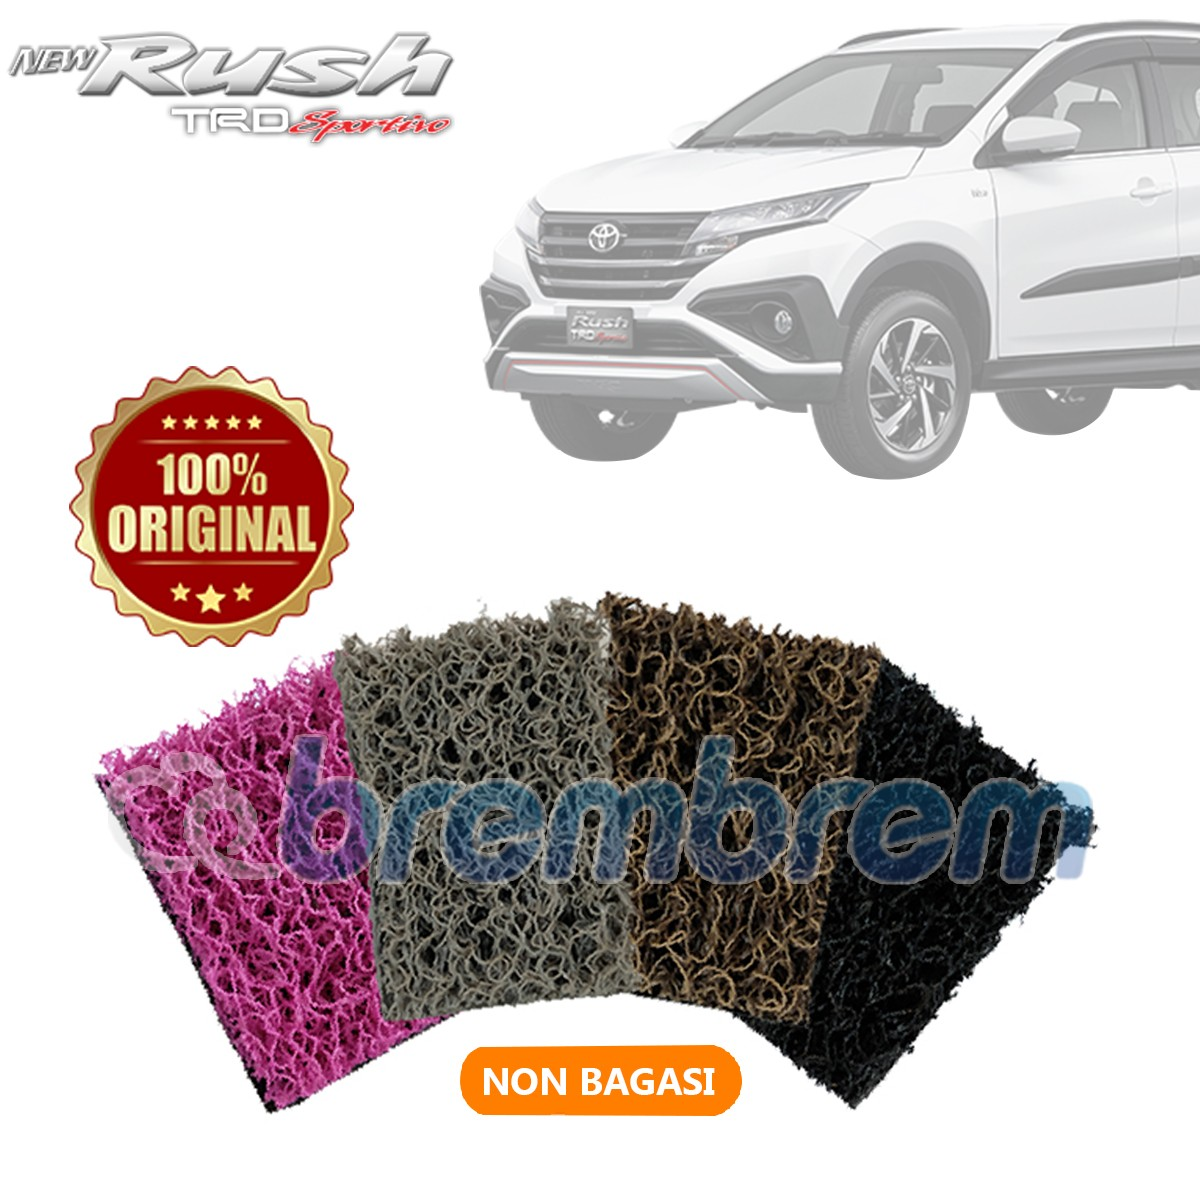 KARPET COMFORT PREMIUM NON BAGASI TOYOTA ALL NEW RUSH 2018